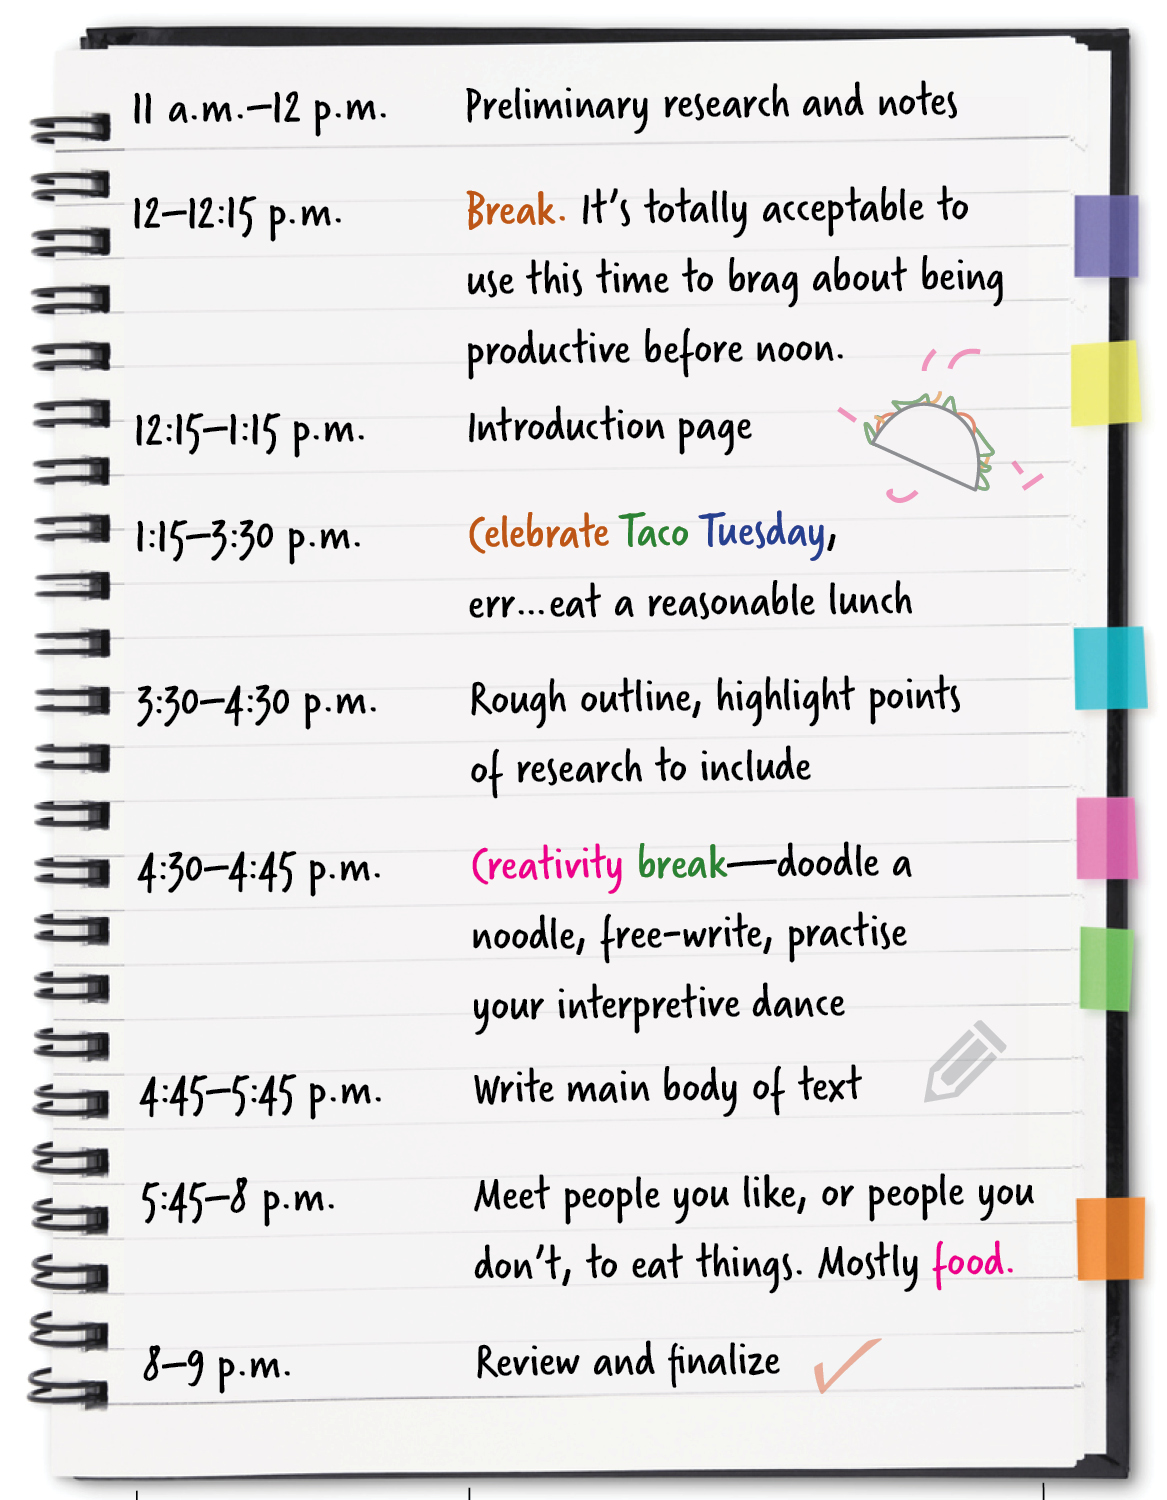 [Notebook graphic displaying:] 11 a.m.–12 p.m.: Preliminary research and notes 12 p.m.–12:15 p.m.: Break. It's totally acceptable to use this time to brag about being productive before noon. 12:15–1:15 p.m.: Introduction page 1:15–3:30 p.m.: Celebrate Taco Tuesday, err…eat a reasonable lunch 3:30–4:30 p.m.: Rough outline, highlight points of research to include 4:30–4:45 p.m.: Creativity break—doodle a noodle, free-write, practise your interpretive dance 4:45–5:45 p.m.: Write main body of text 5:45–8 p.m.: Meet people you like, or people you don't, to eat things. Mostly food. 8–9 p.m.: Review and finalize